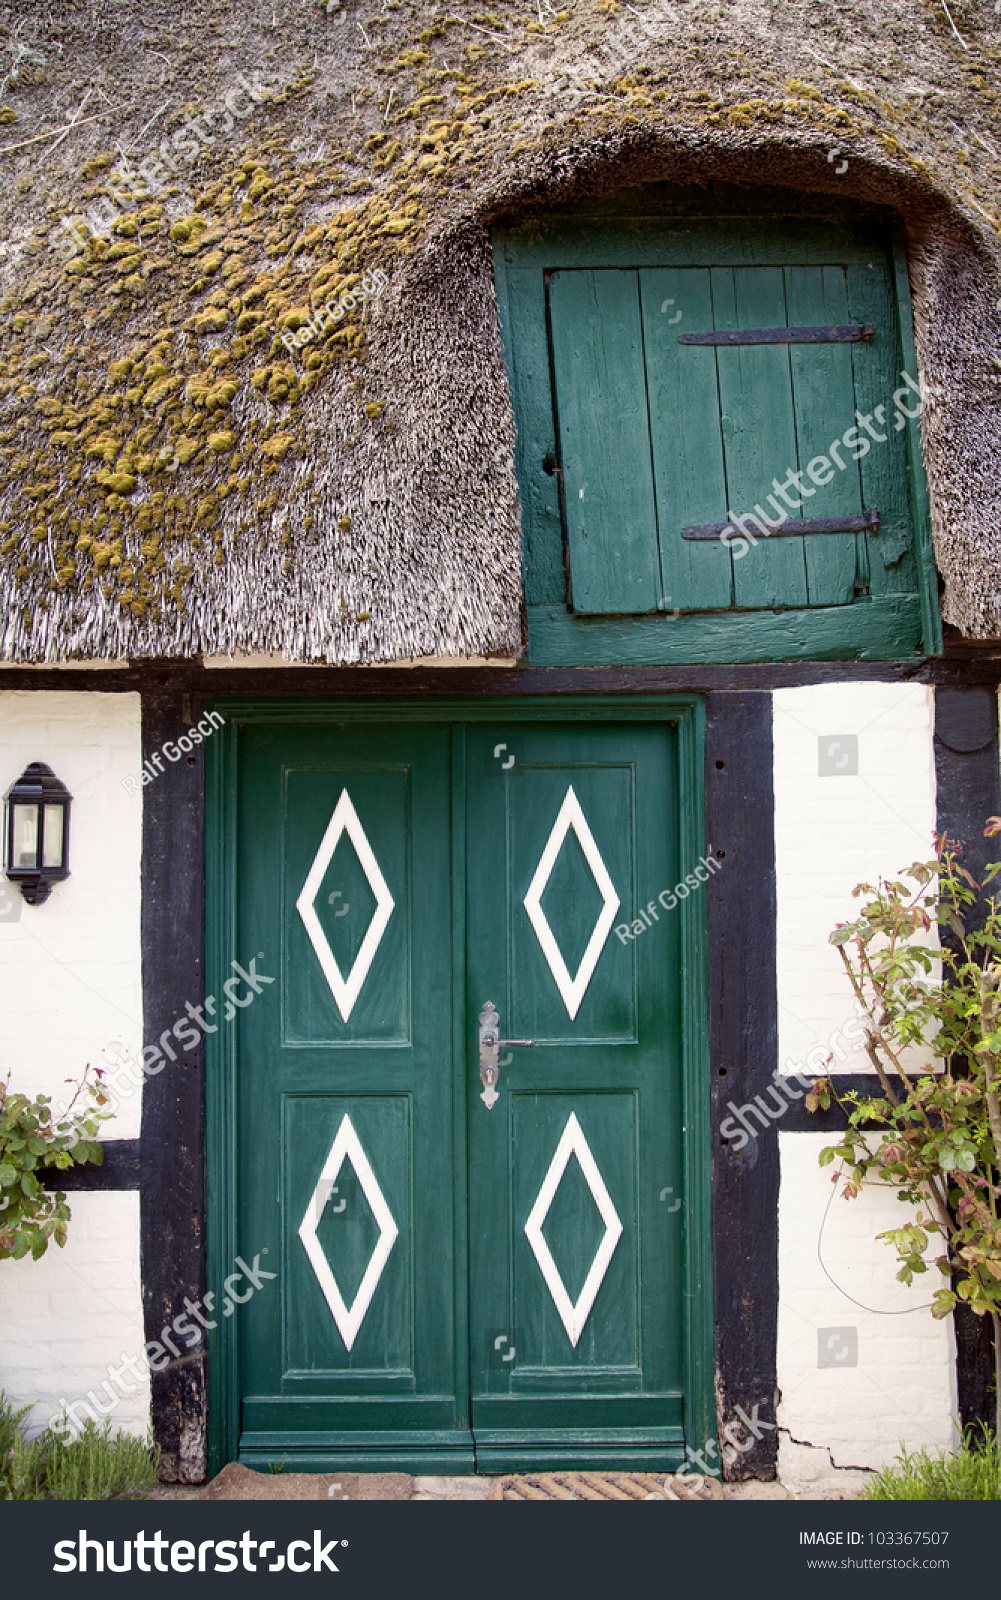 house with thatched roof in the village of sieseby schleswig holstein germany stock photo. Black Bedroom Furniture Sets. Home Design Ideas